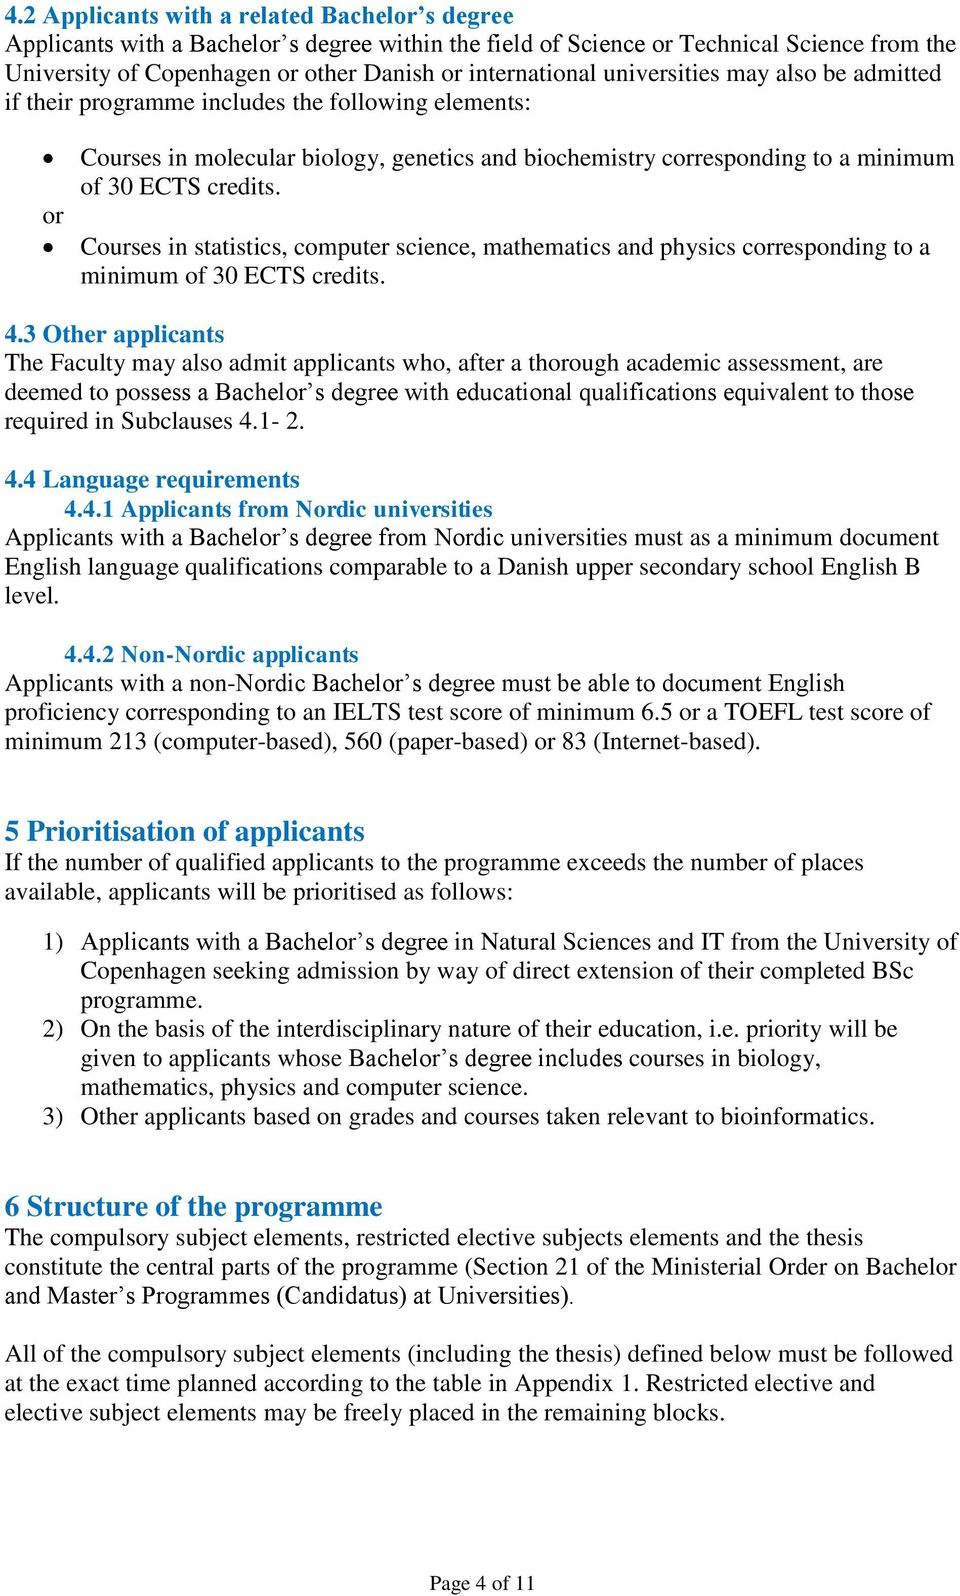 Courses in statistics, computer science, mathematics and physics corresponding to a minimum of 30 ECTS credits. 4.